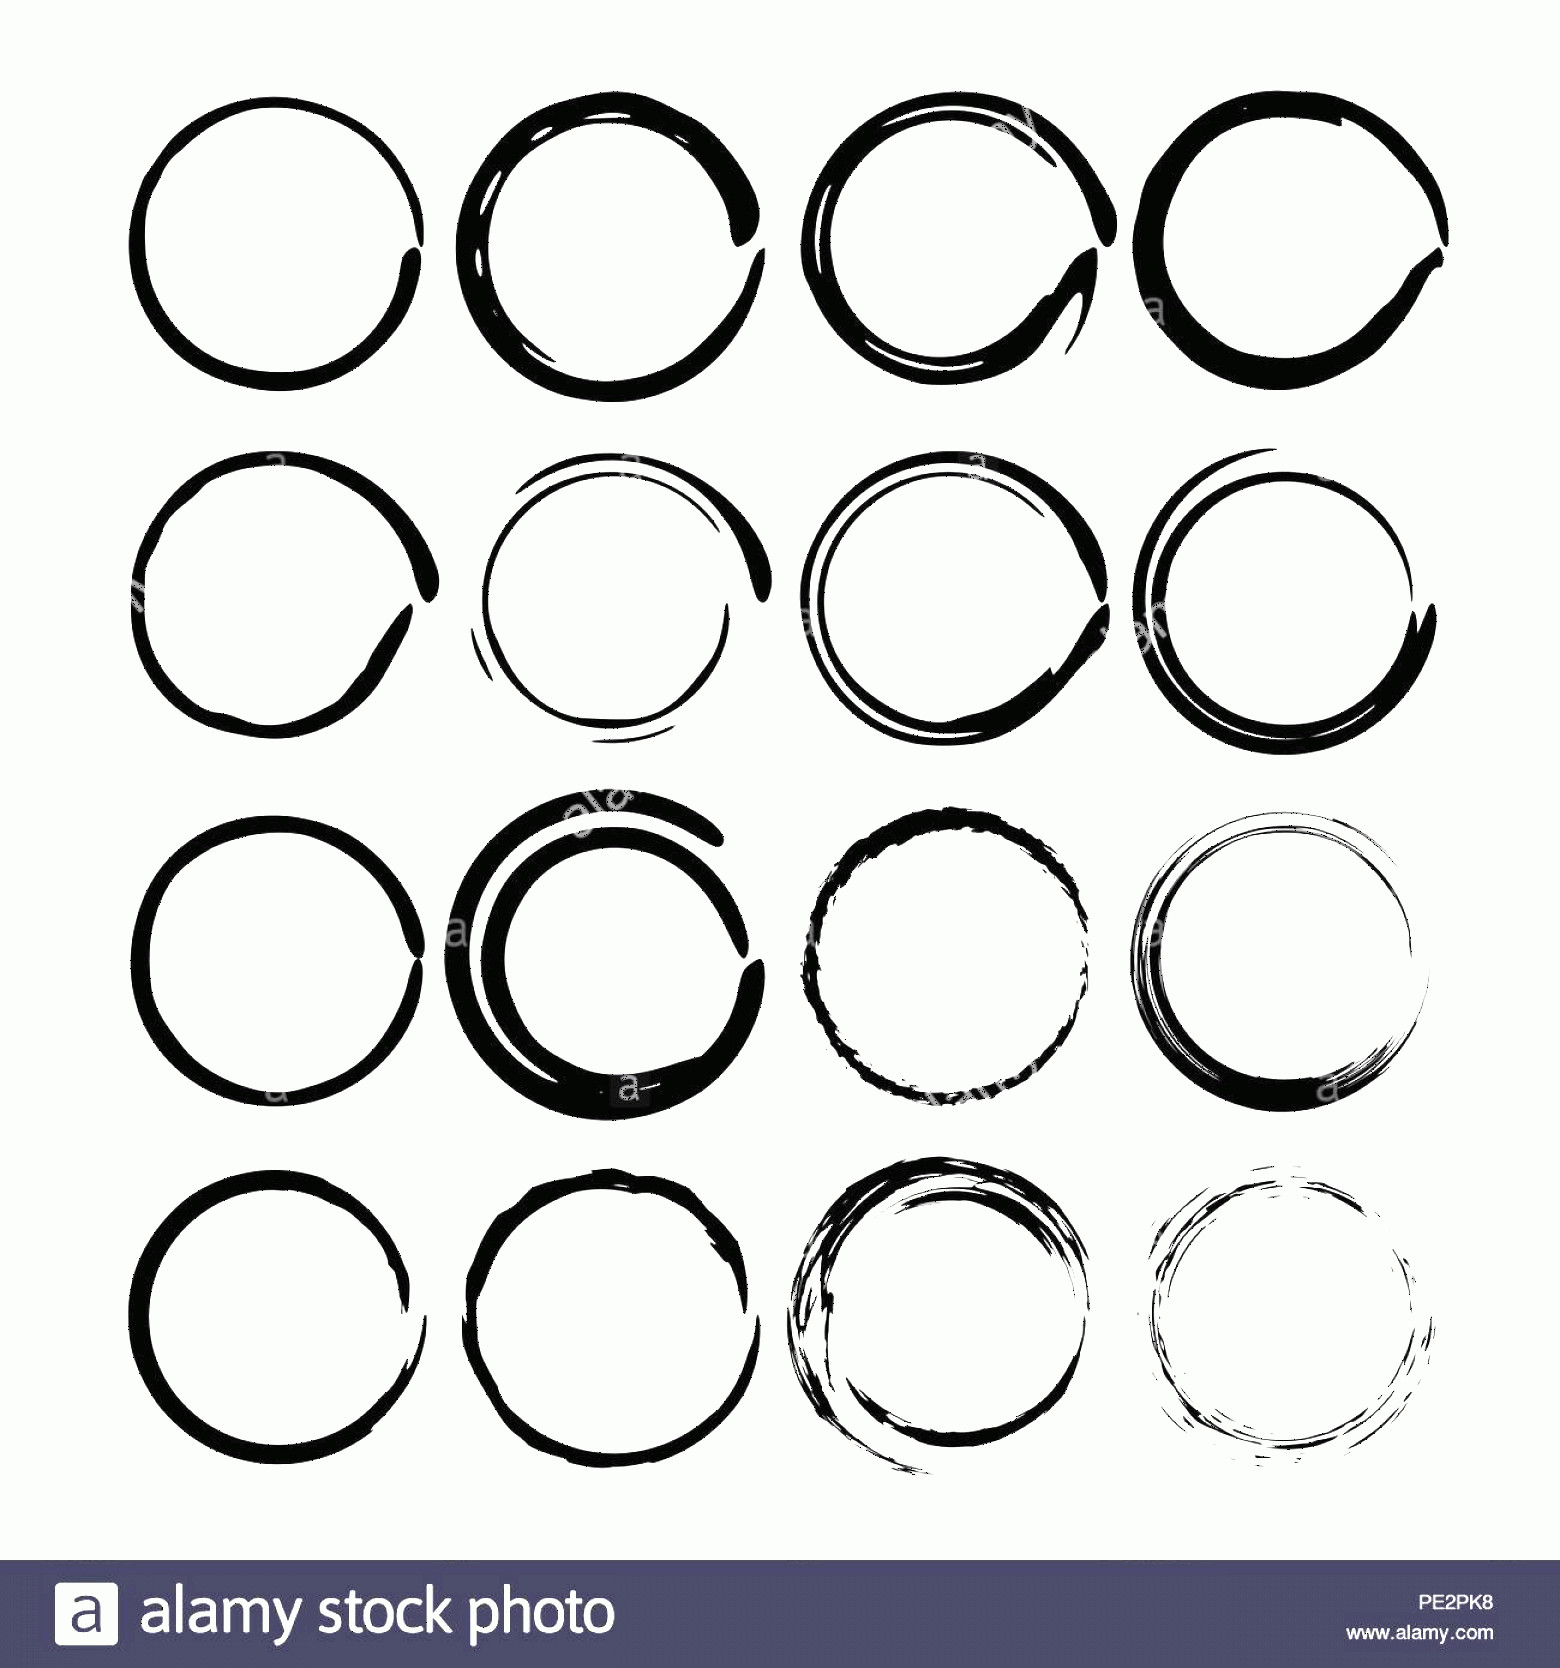 Distressed Border Circle Vector: Set Of Black Circle Grunge Frames Creative Ink Round Borders Vector Illustration Image